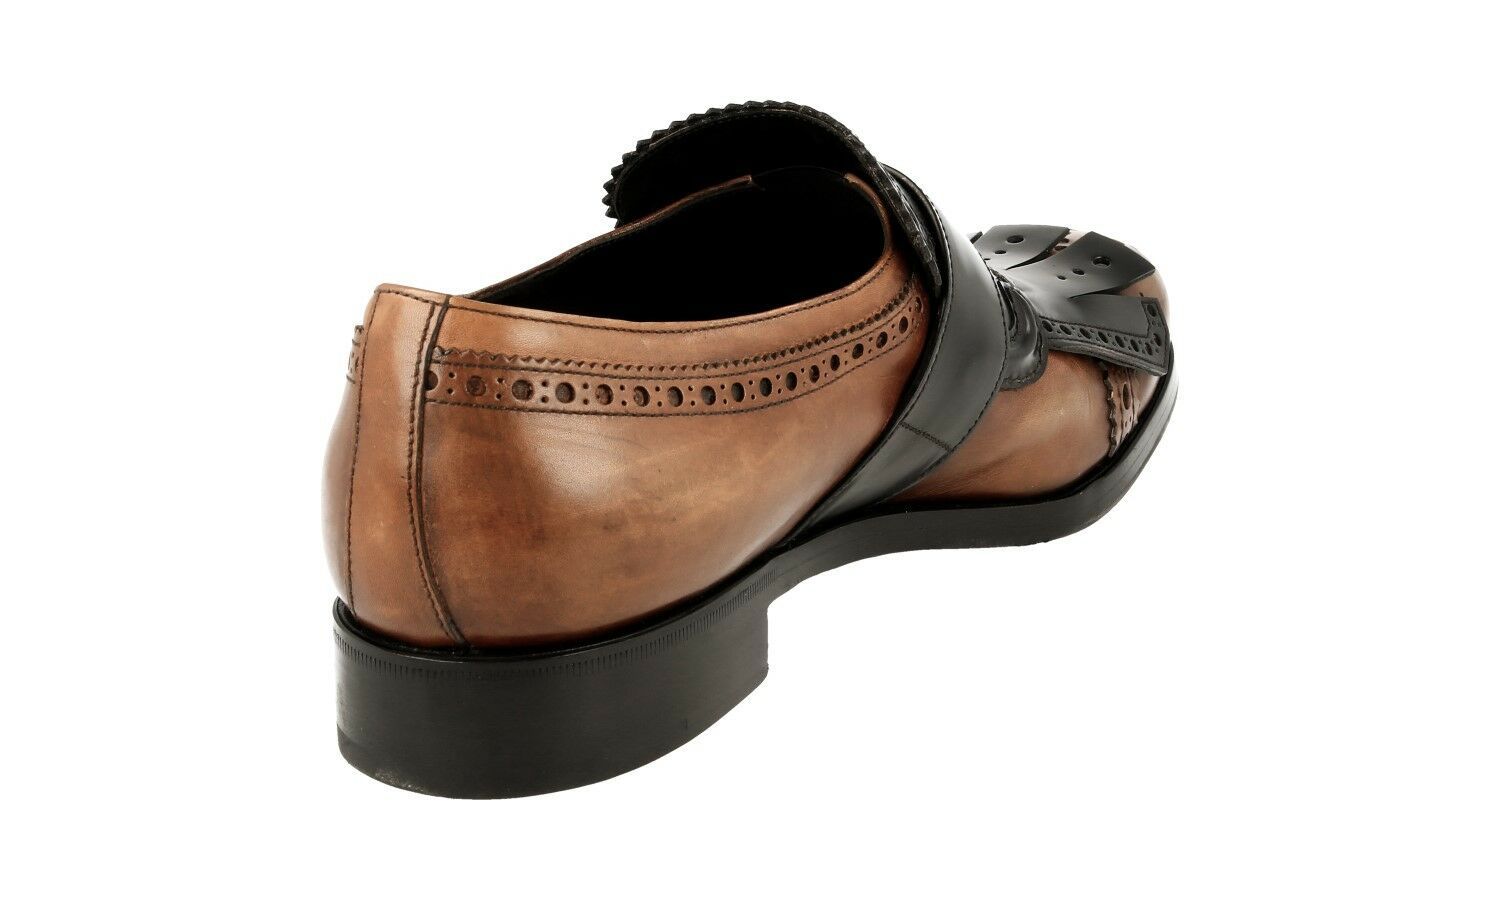 AUTHENTIC LUXURY PRADA BUSINESS SHOES 2OG056 BROWN NEW NEW NEW US 11 EU 44 44,5 3fa7b0